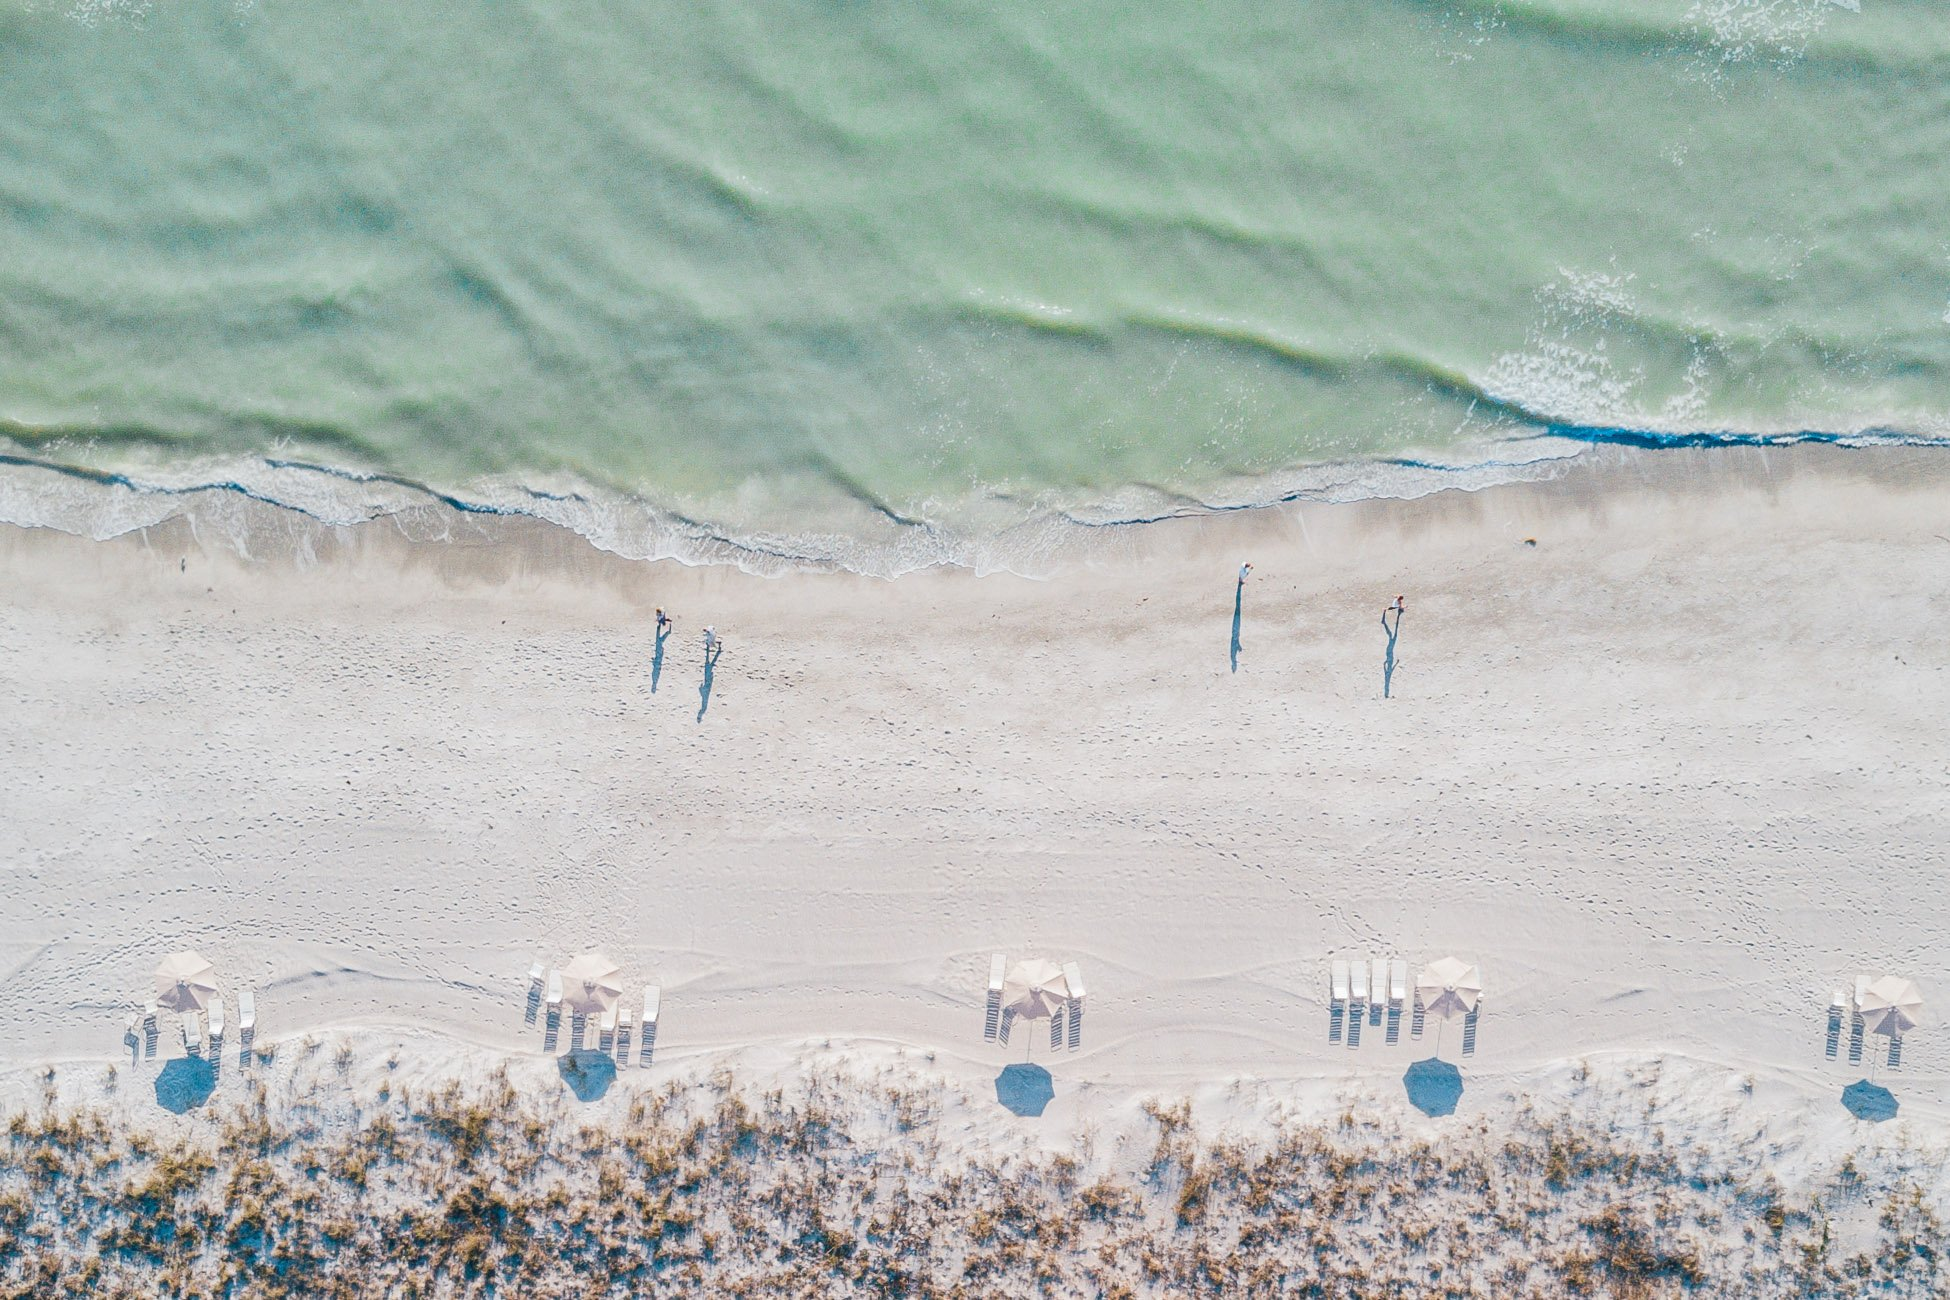 Siesta Key Florida as seen from above with a drone